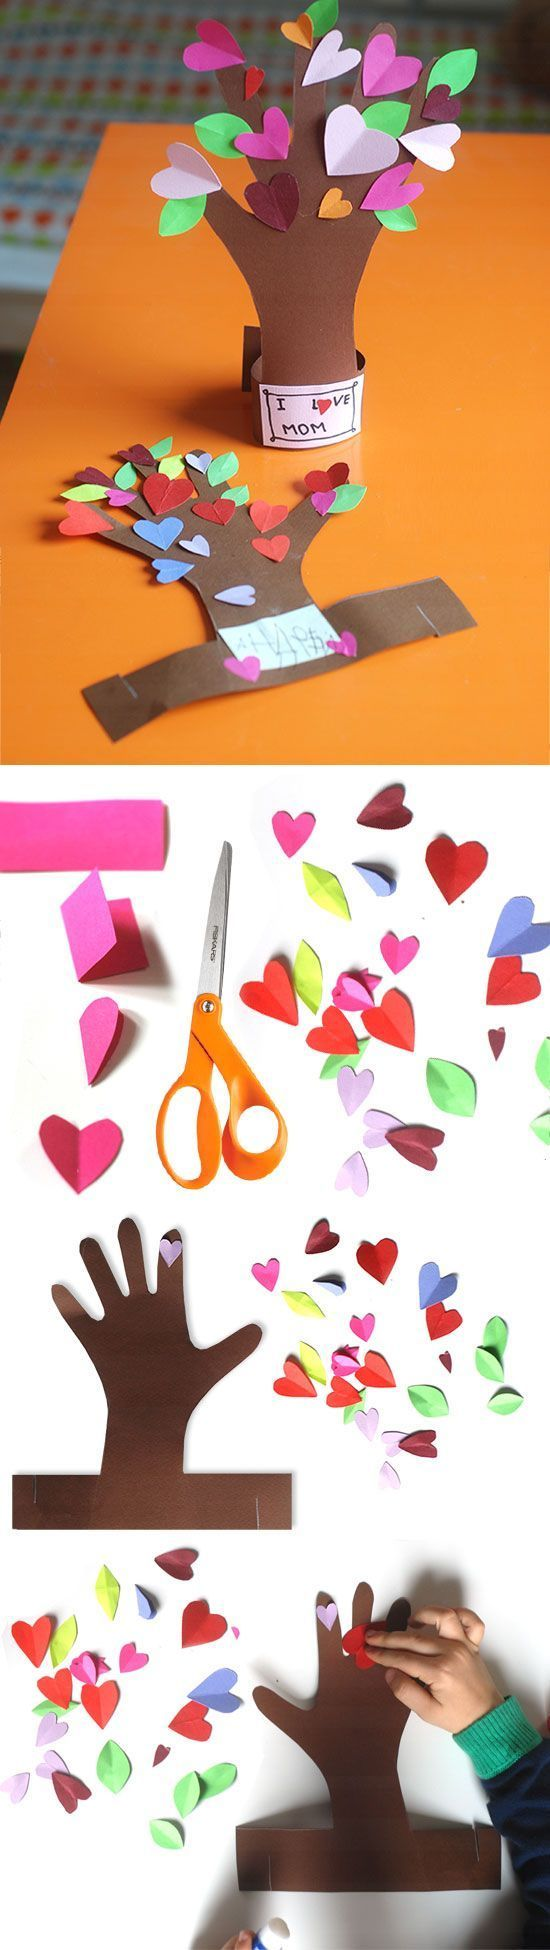 Simple valentine crafts for toddlers - 26 Super Fun Valentines Day Crafts For Kids To Make